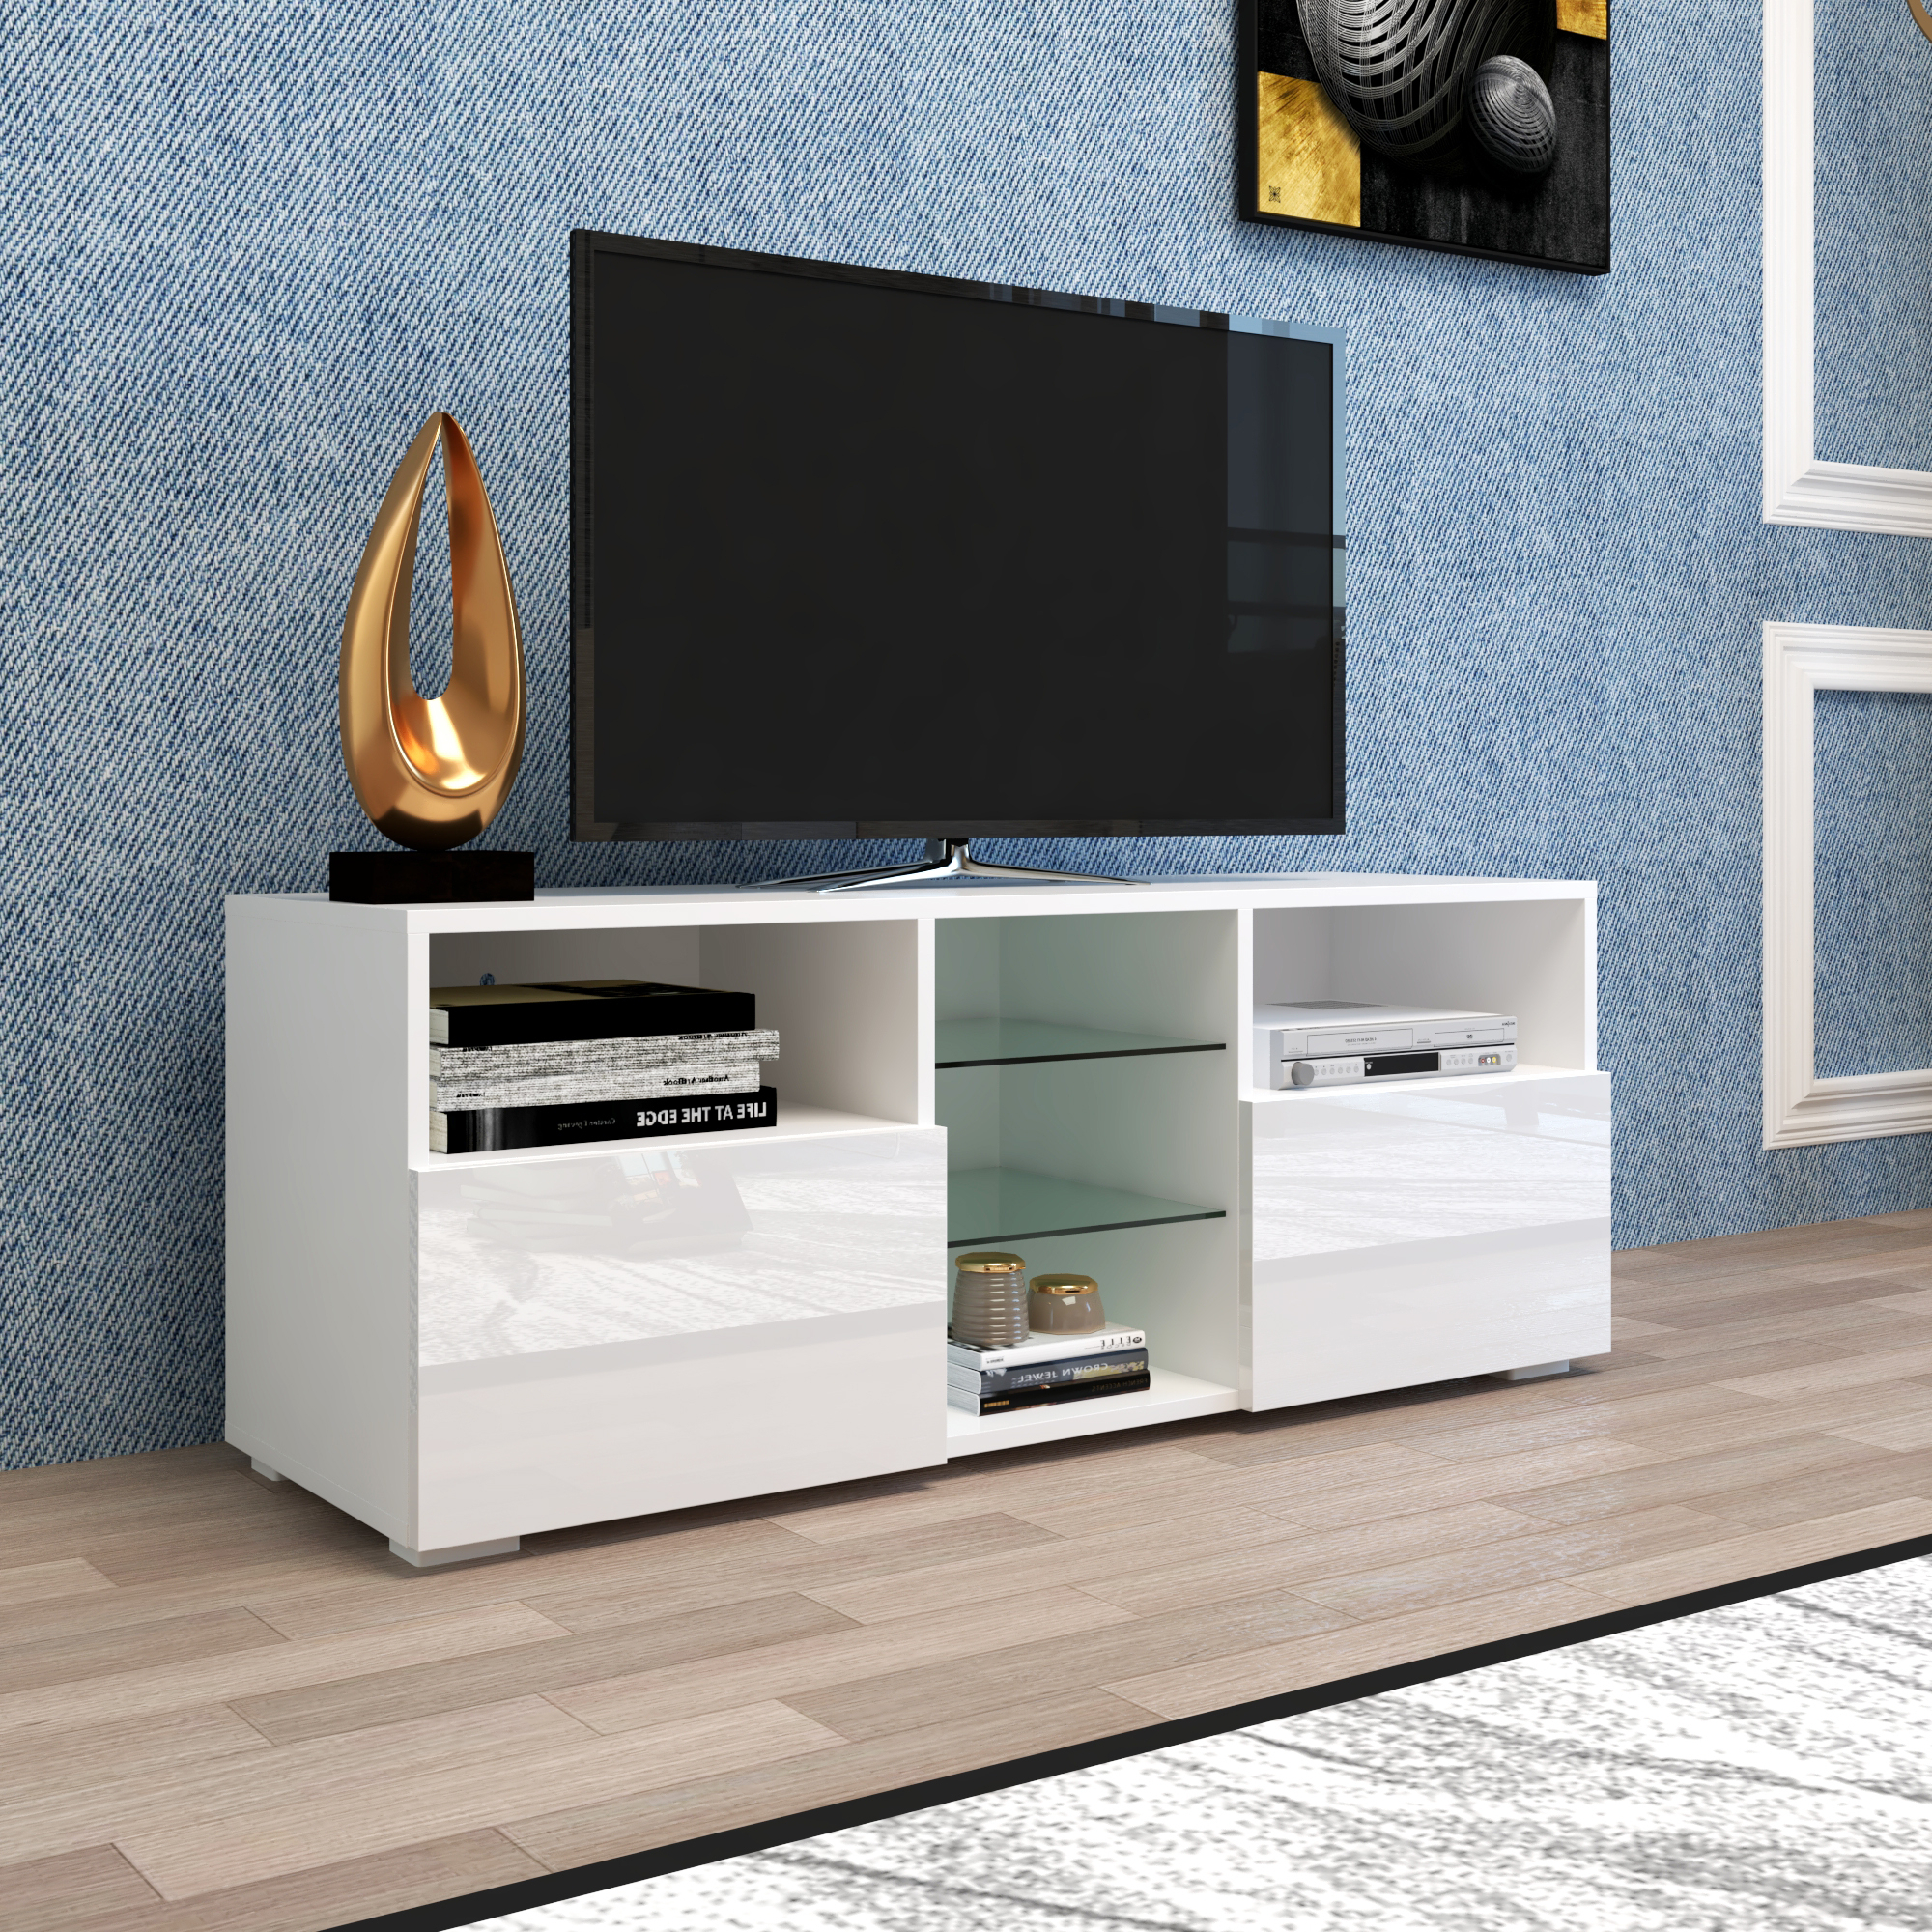 """Yofe Tv Entertainment Center For Up To 65 Inch Tv, High Within Preferred Olinda Tv Stands For Tvs Up To 65"""" (View 11 of 25)"""